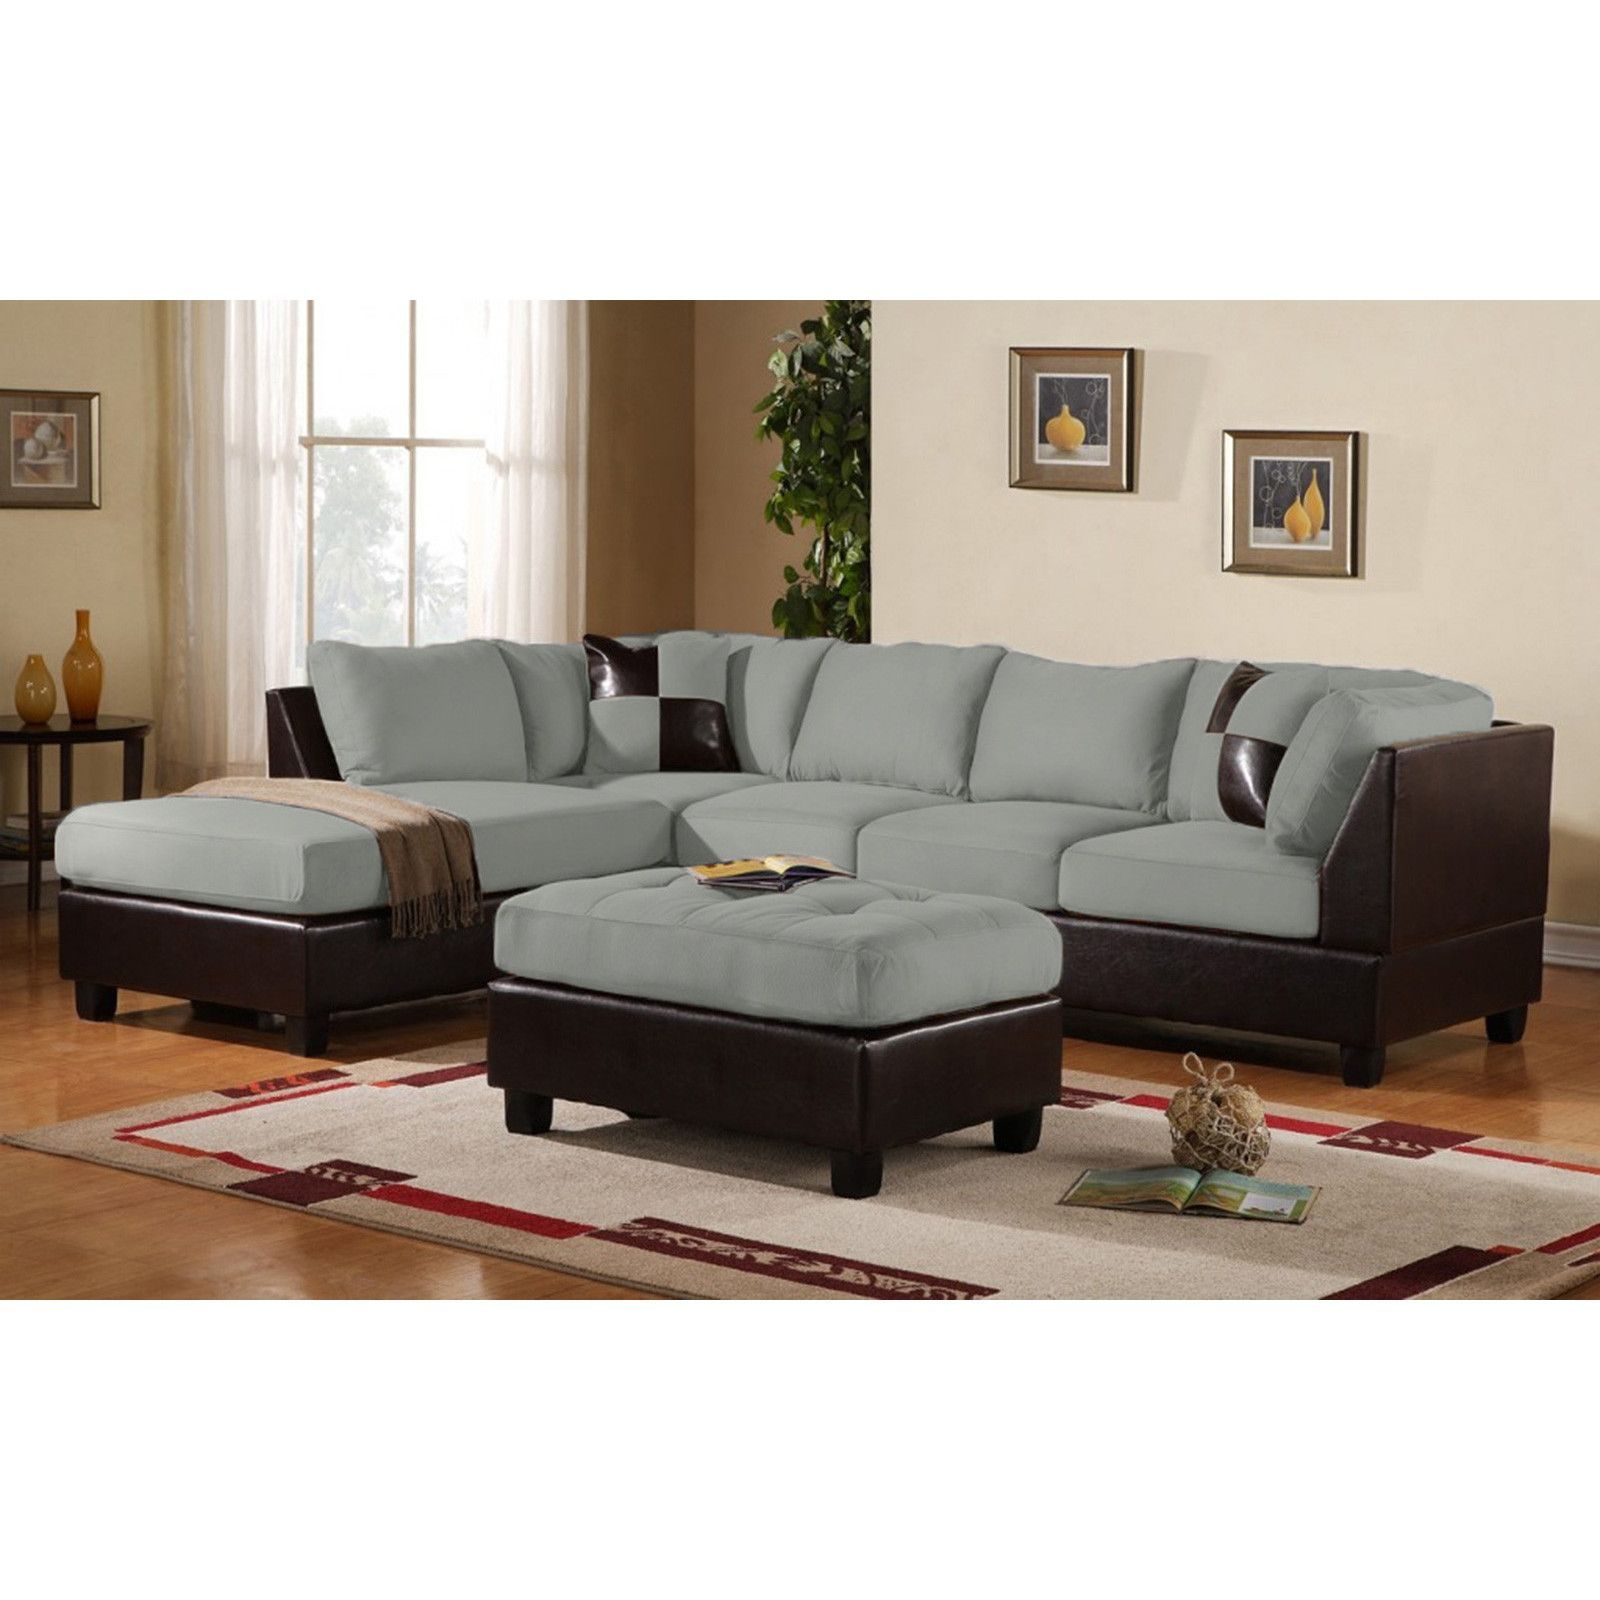 Madison 3 Piece Modern Soft Reversible Microfiber And Faux Leather Sectional Sofa With Ottoman